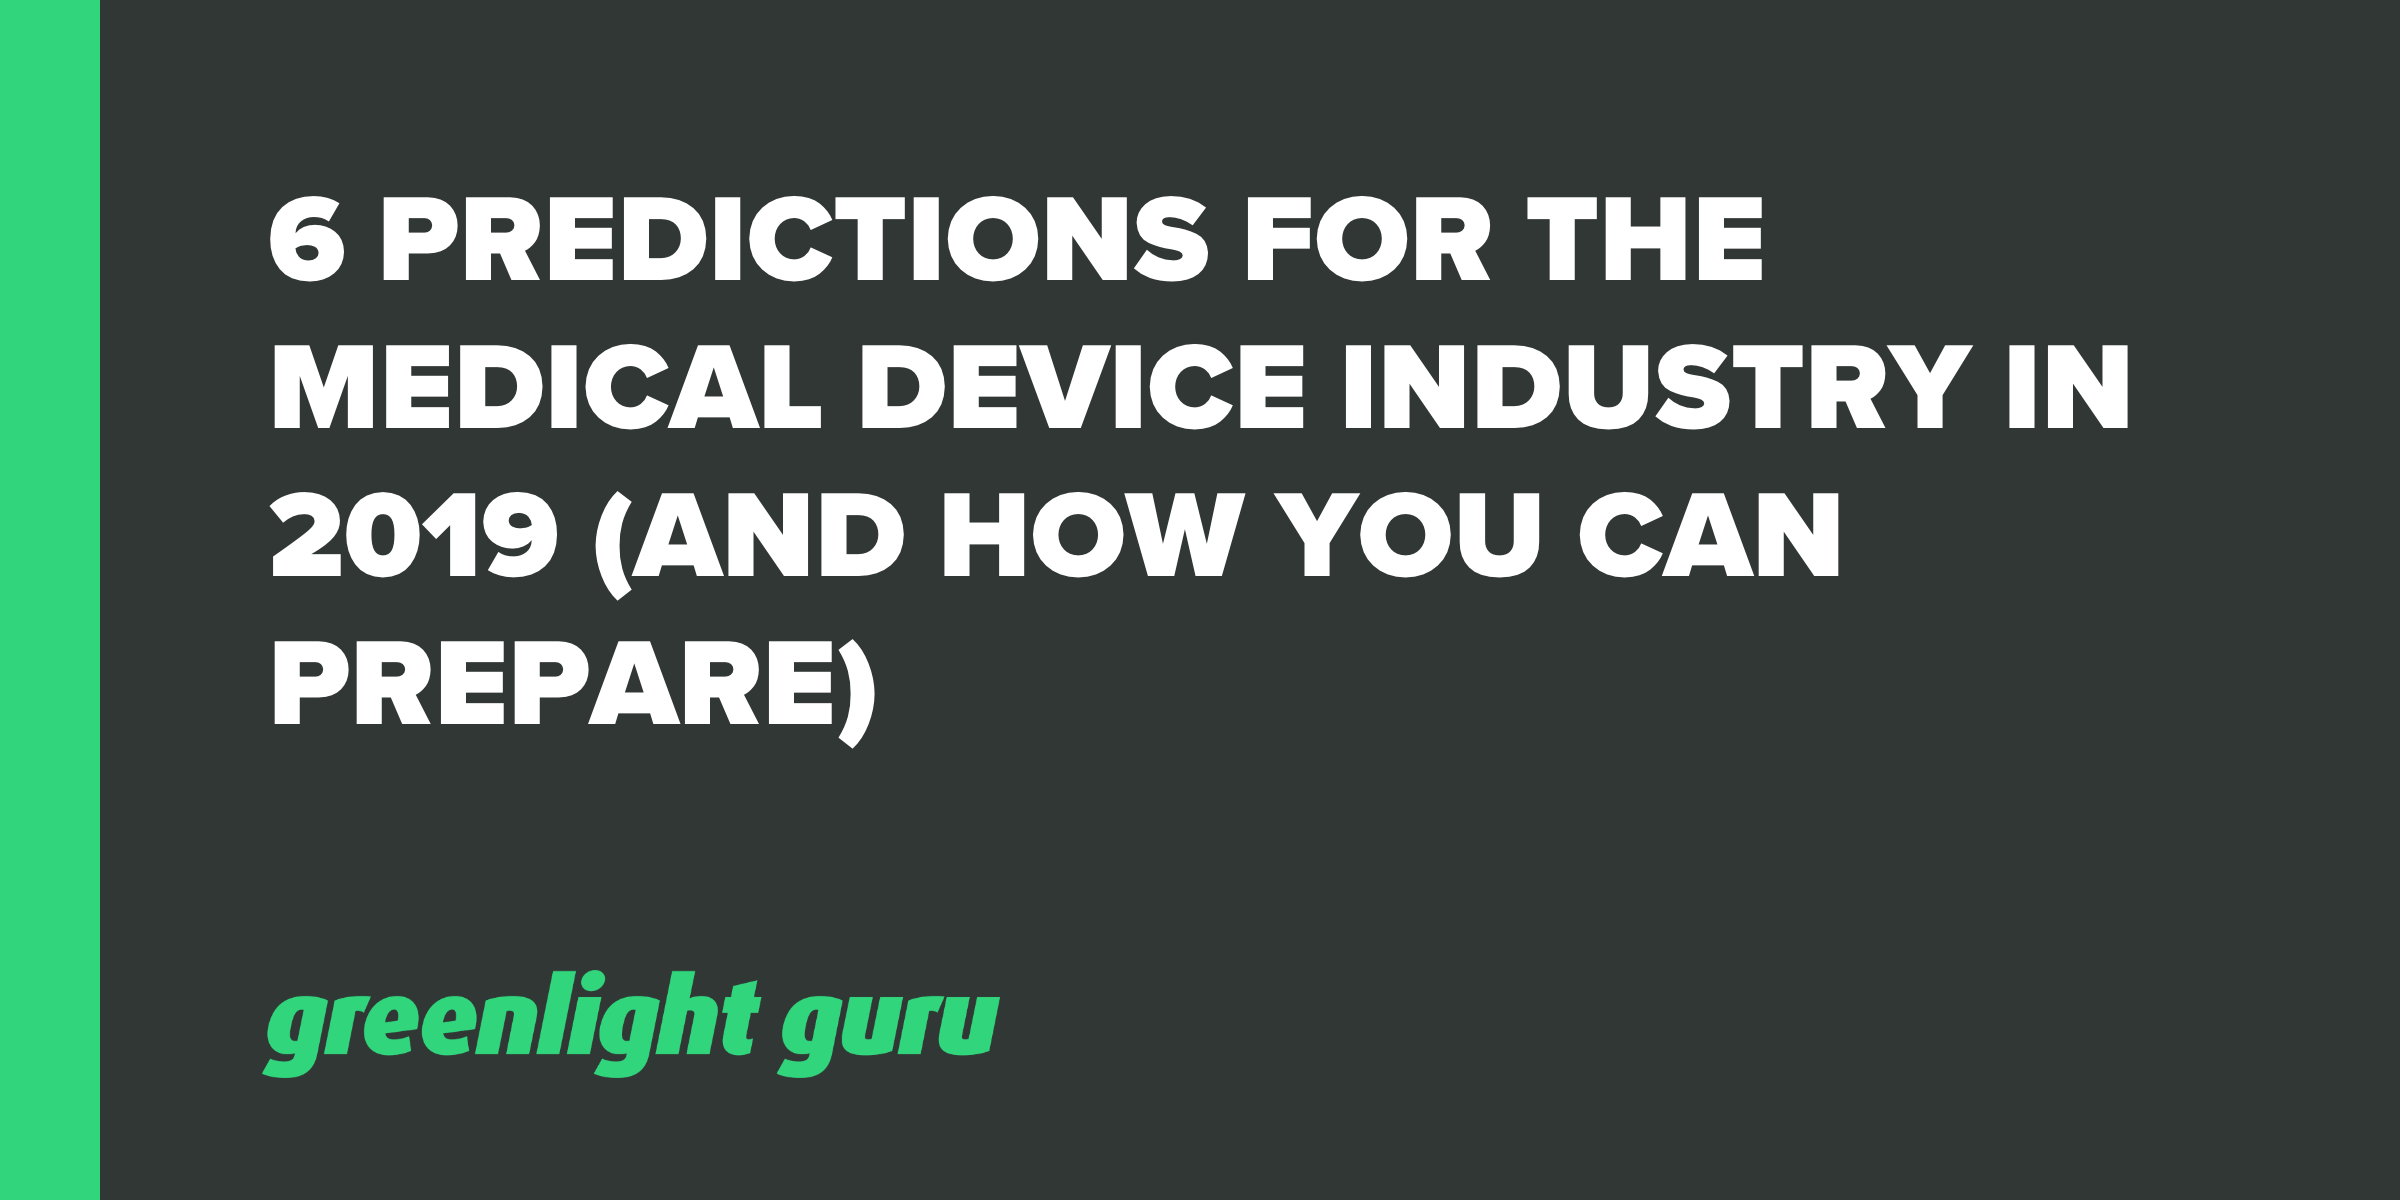 6 Predictions for the Medical Device Industry in 2019 (and how you can prepare) - Featured Image